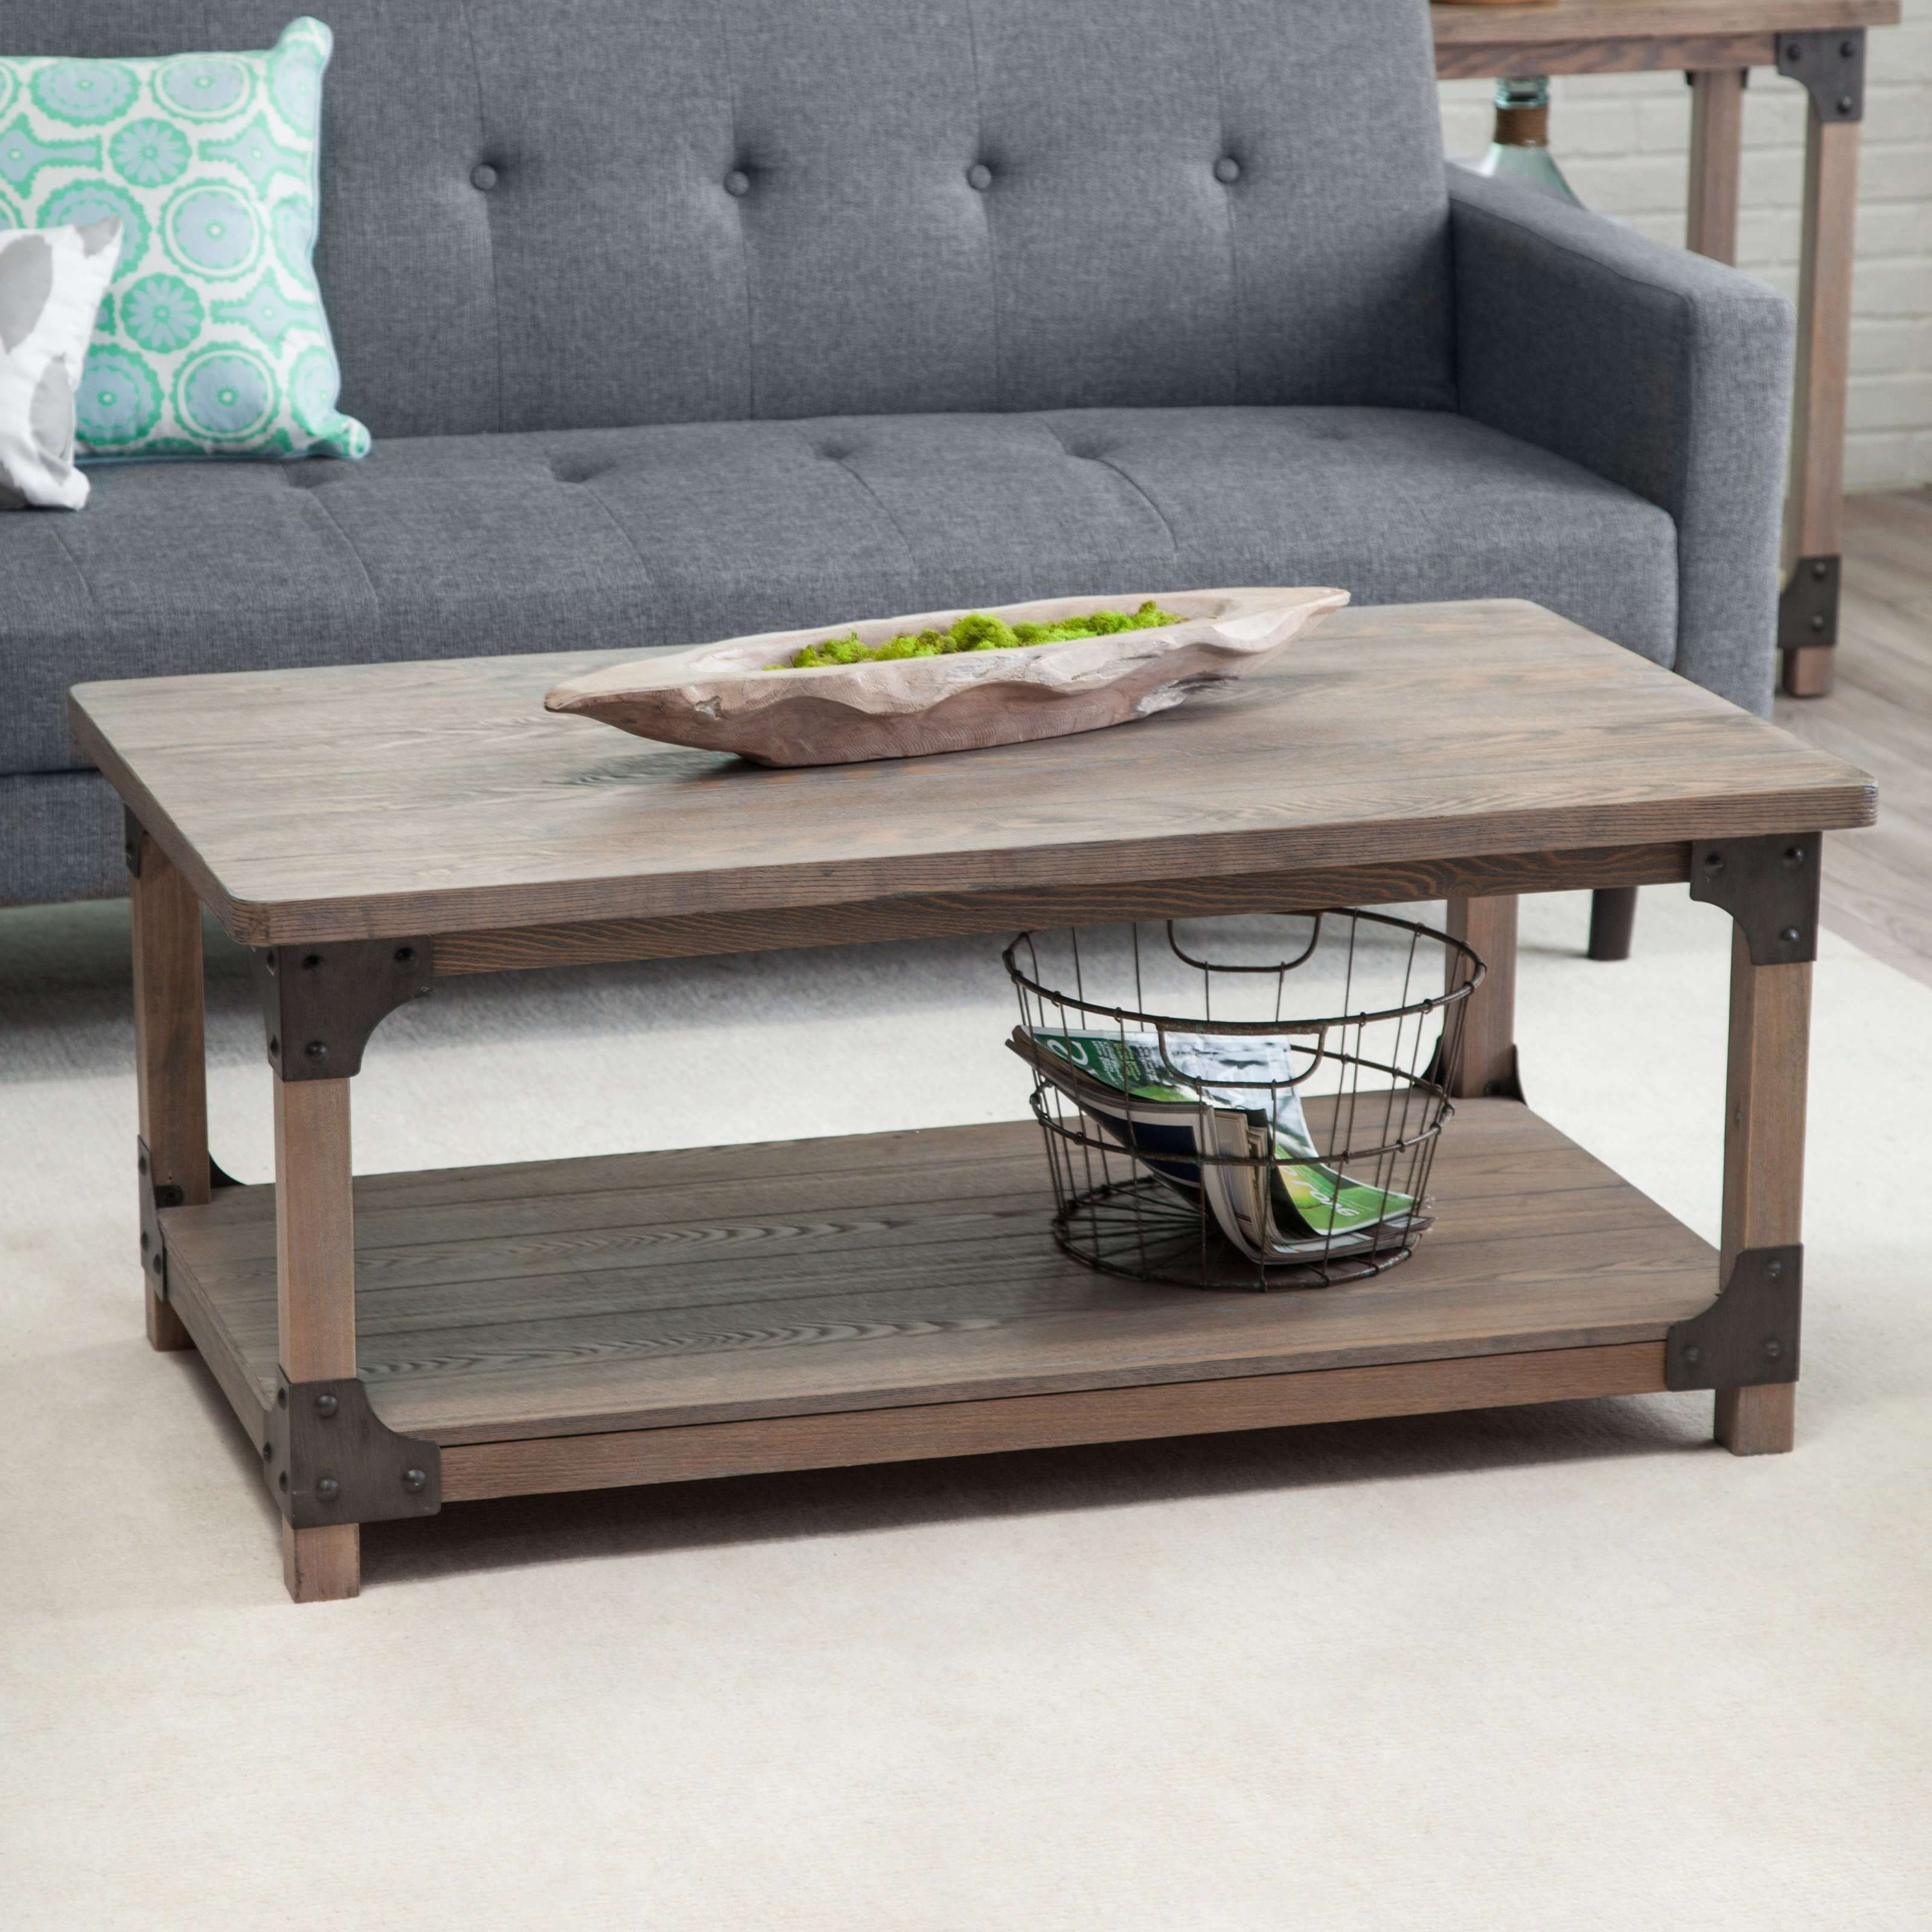 Belham Living Jamestown Rustic Coffee Table With Unique Driftwood Throughout Current Rustic Coffee Tables (View 9 of 20)